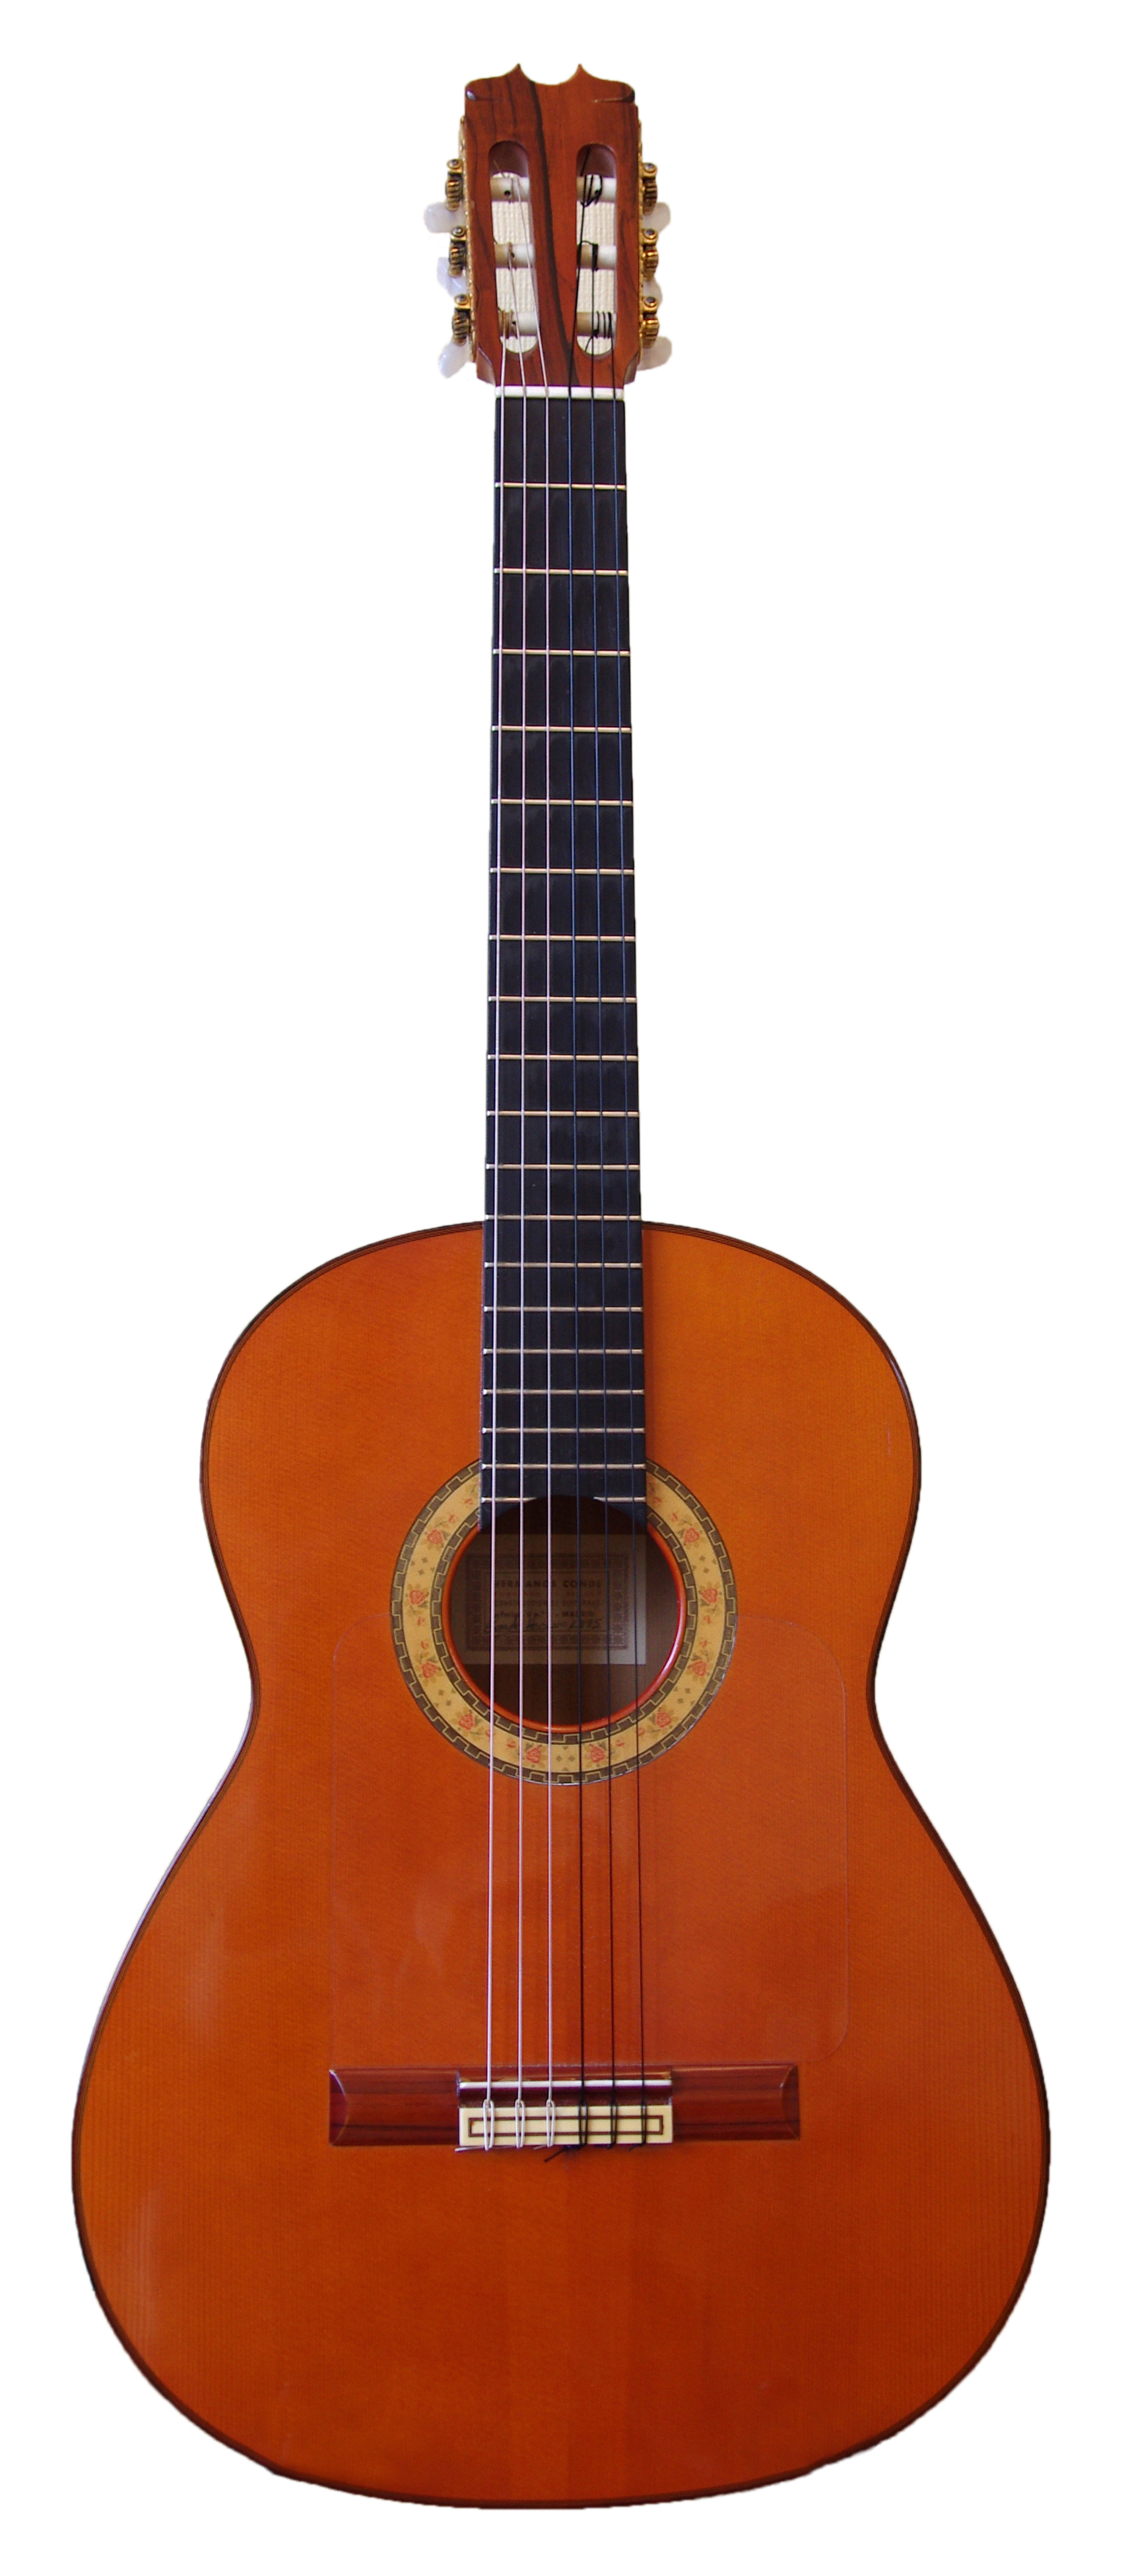 Unique guitar